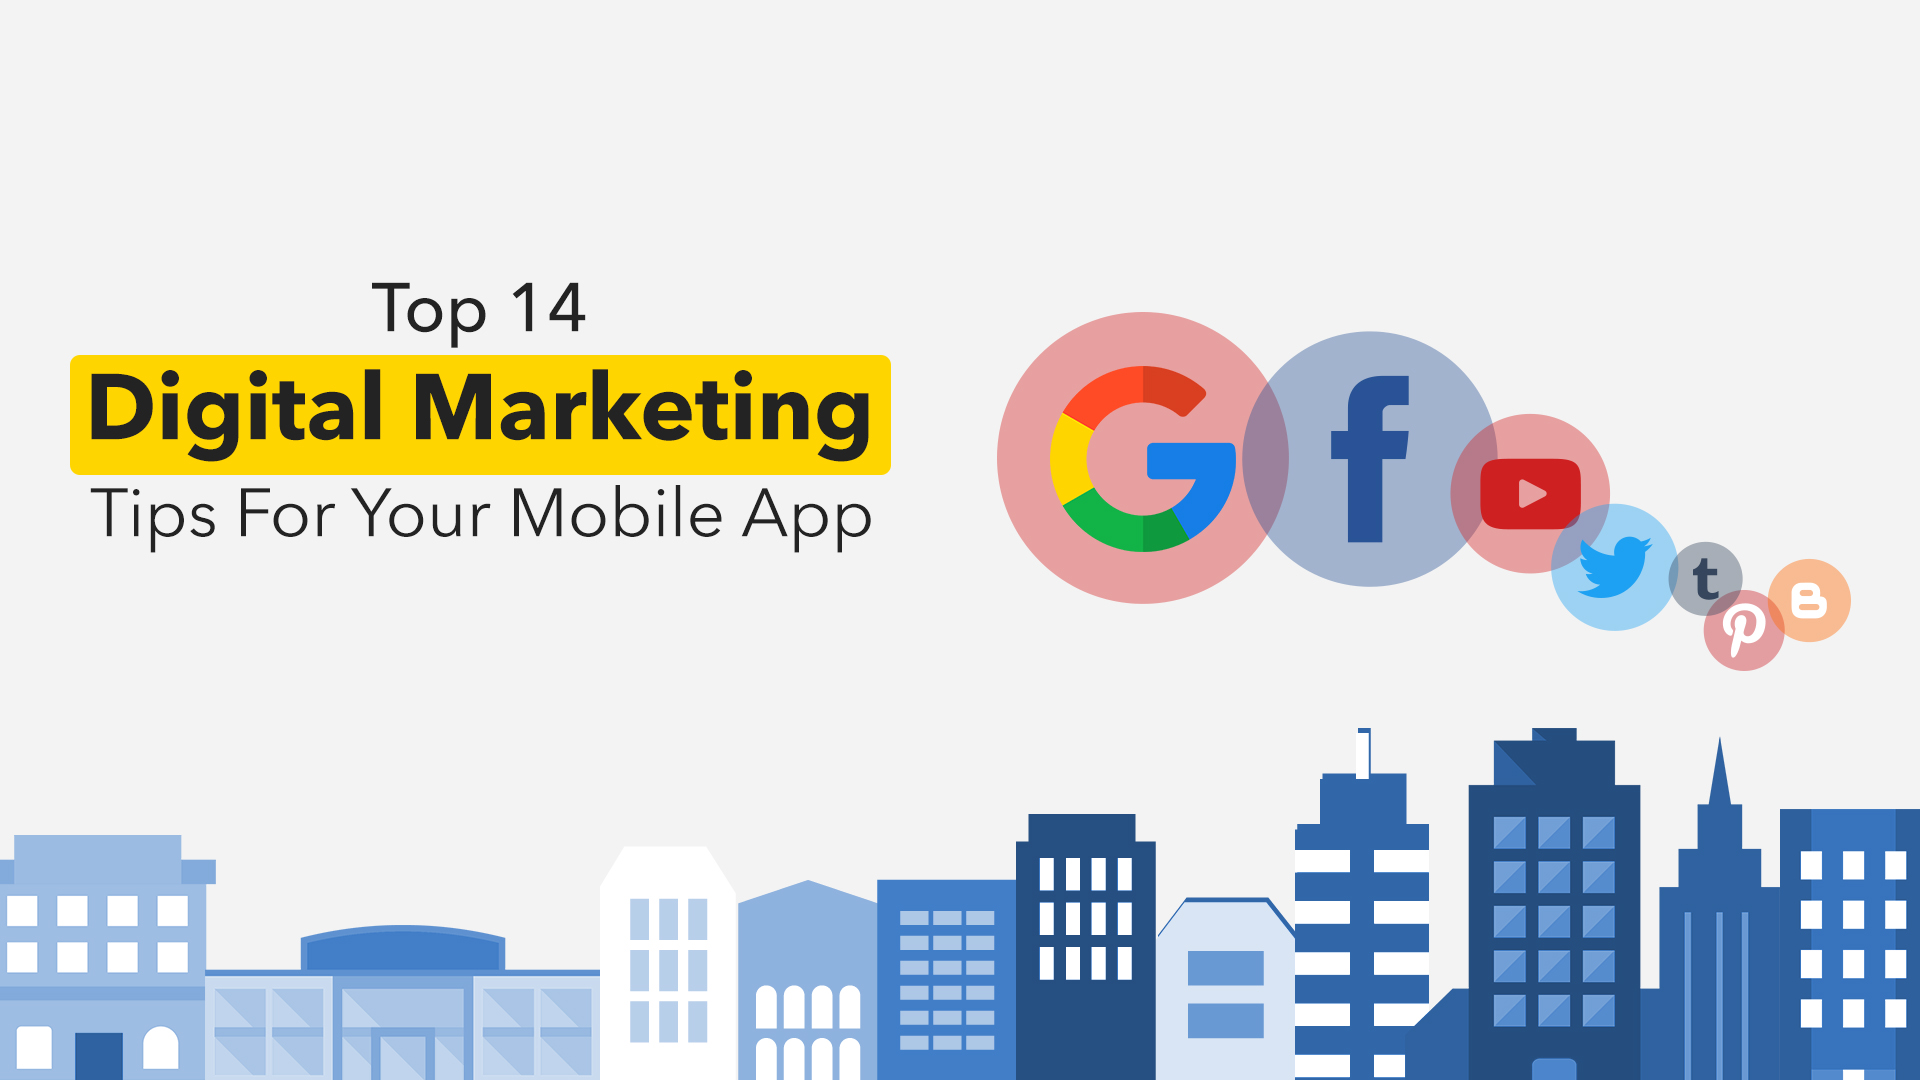 Digital marketing of mobile apps: Tips